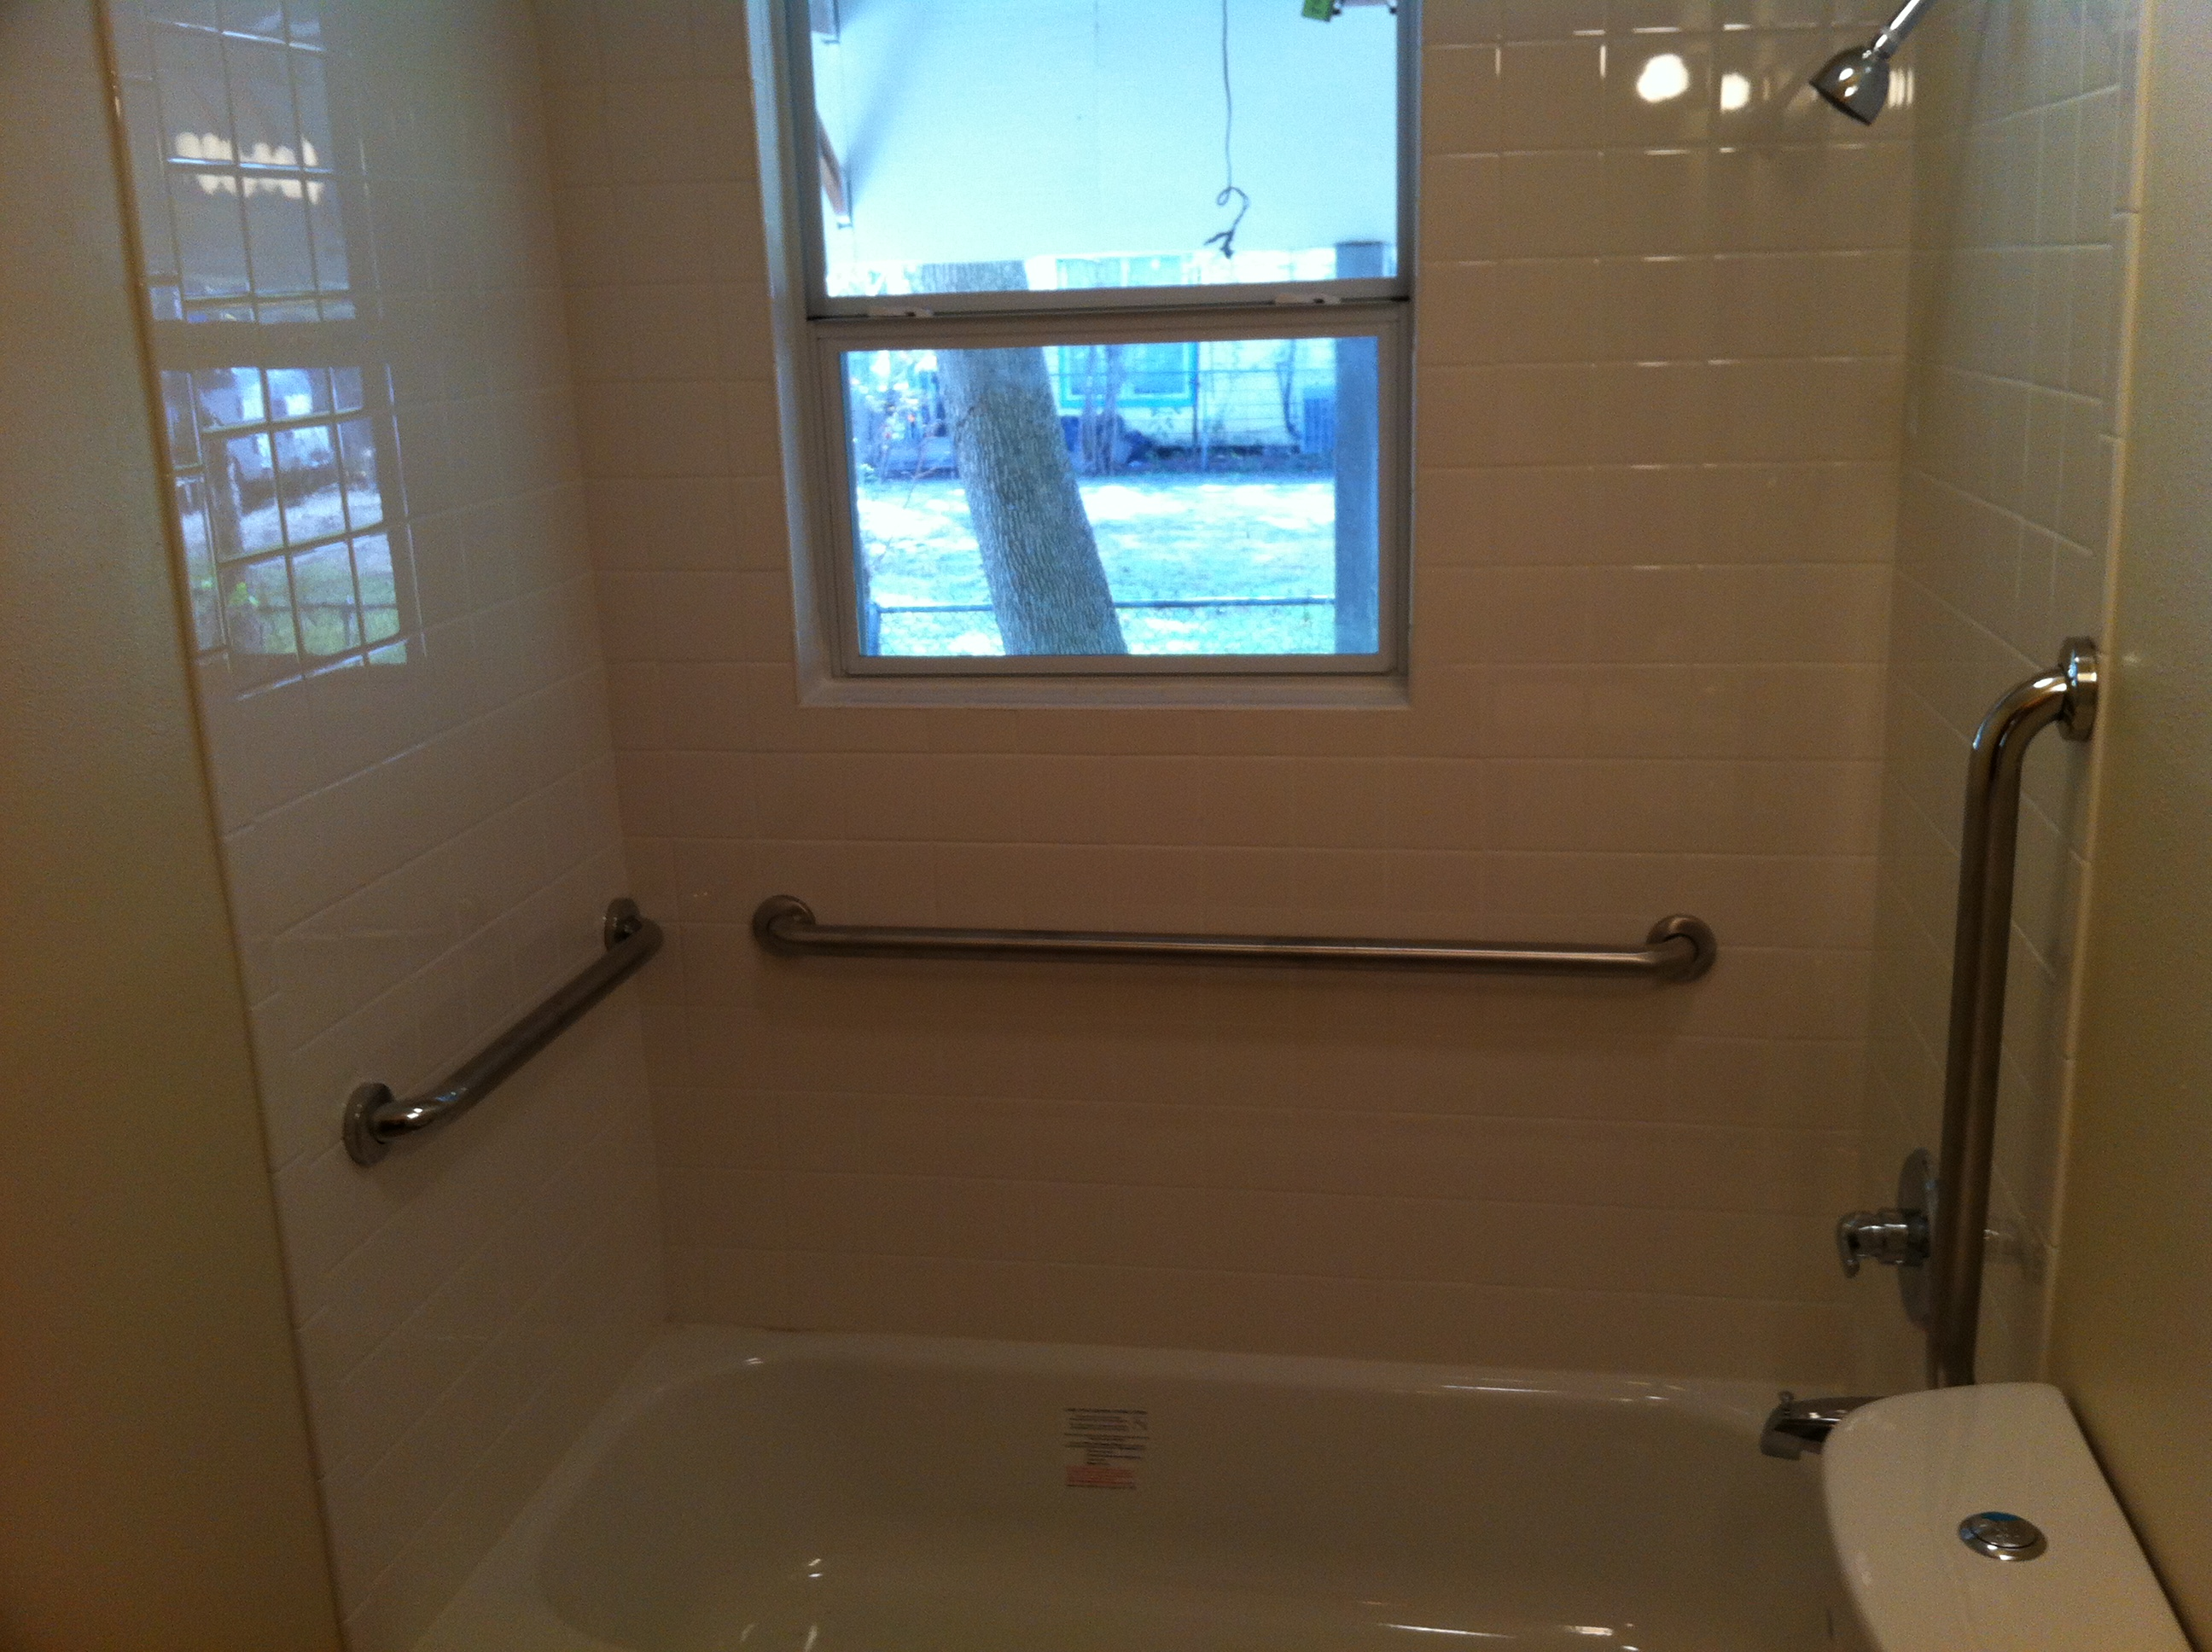 bath grab bars installation. b bath grab bars installation